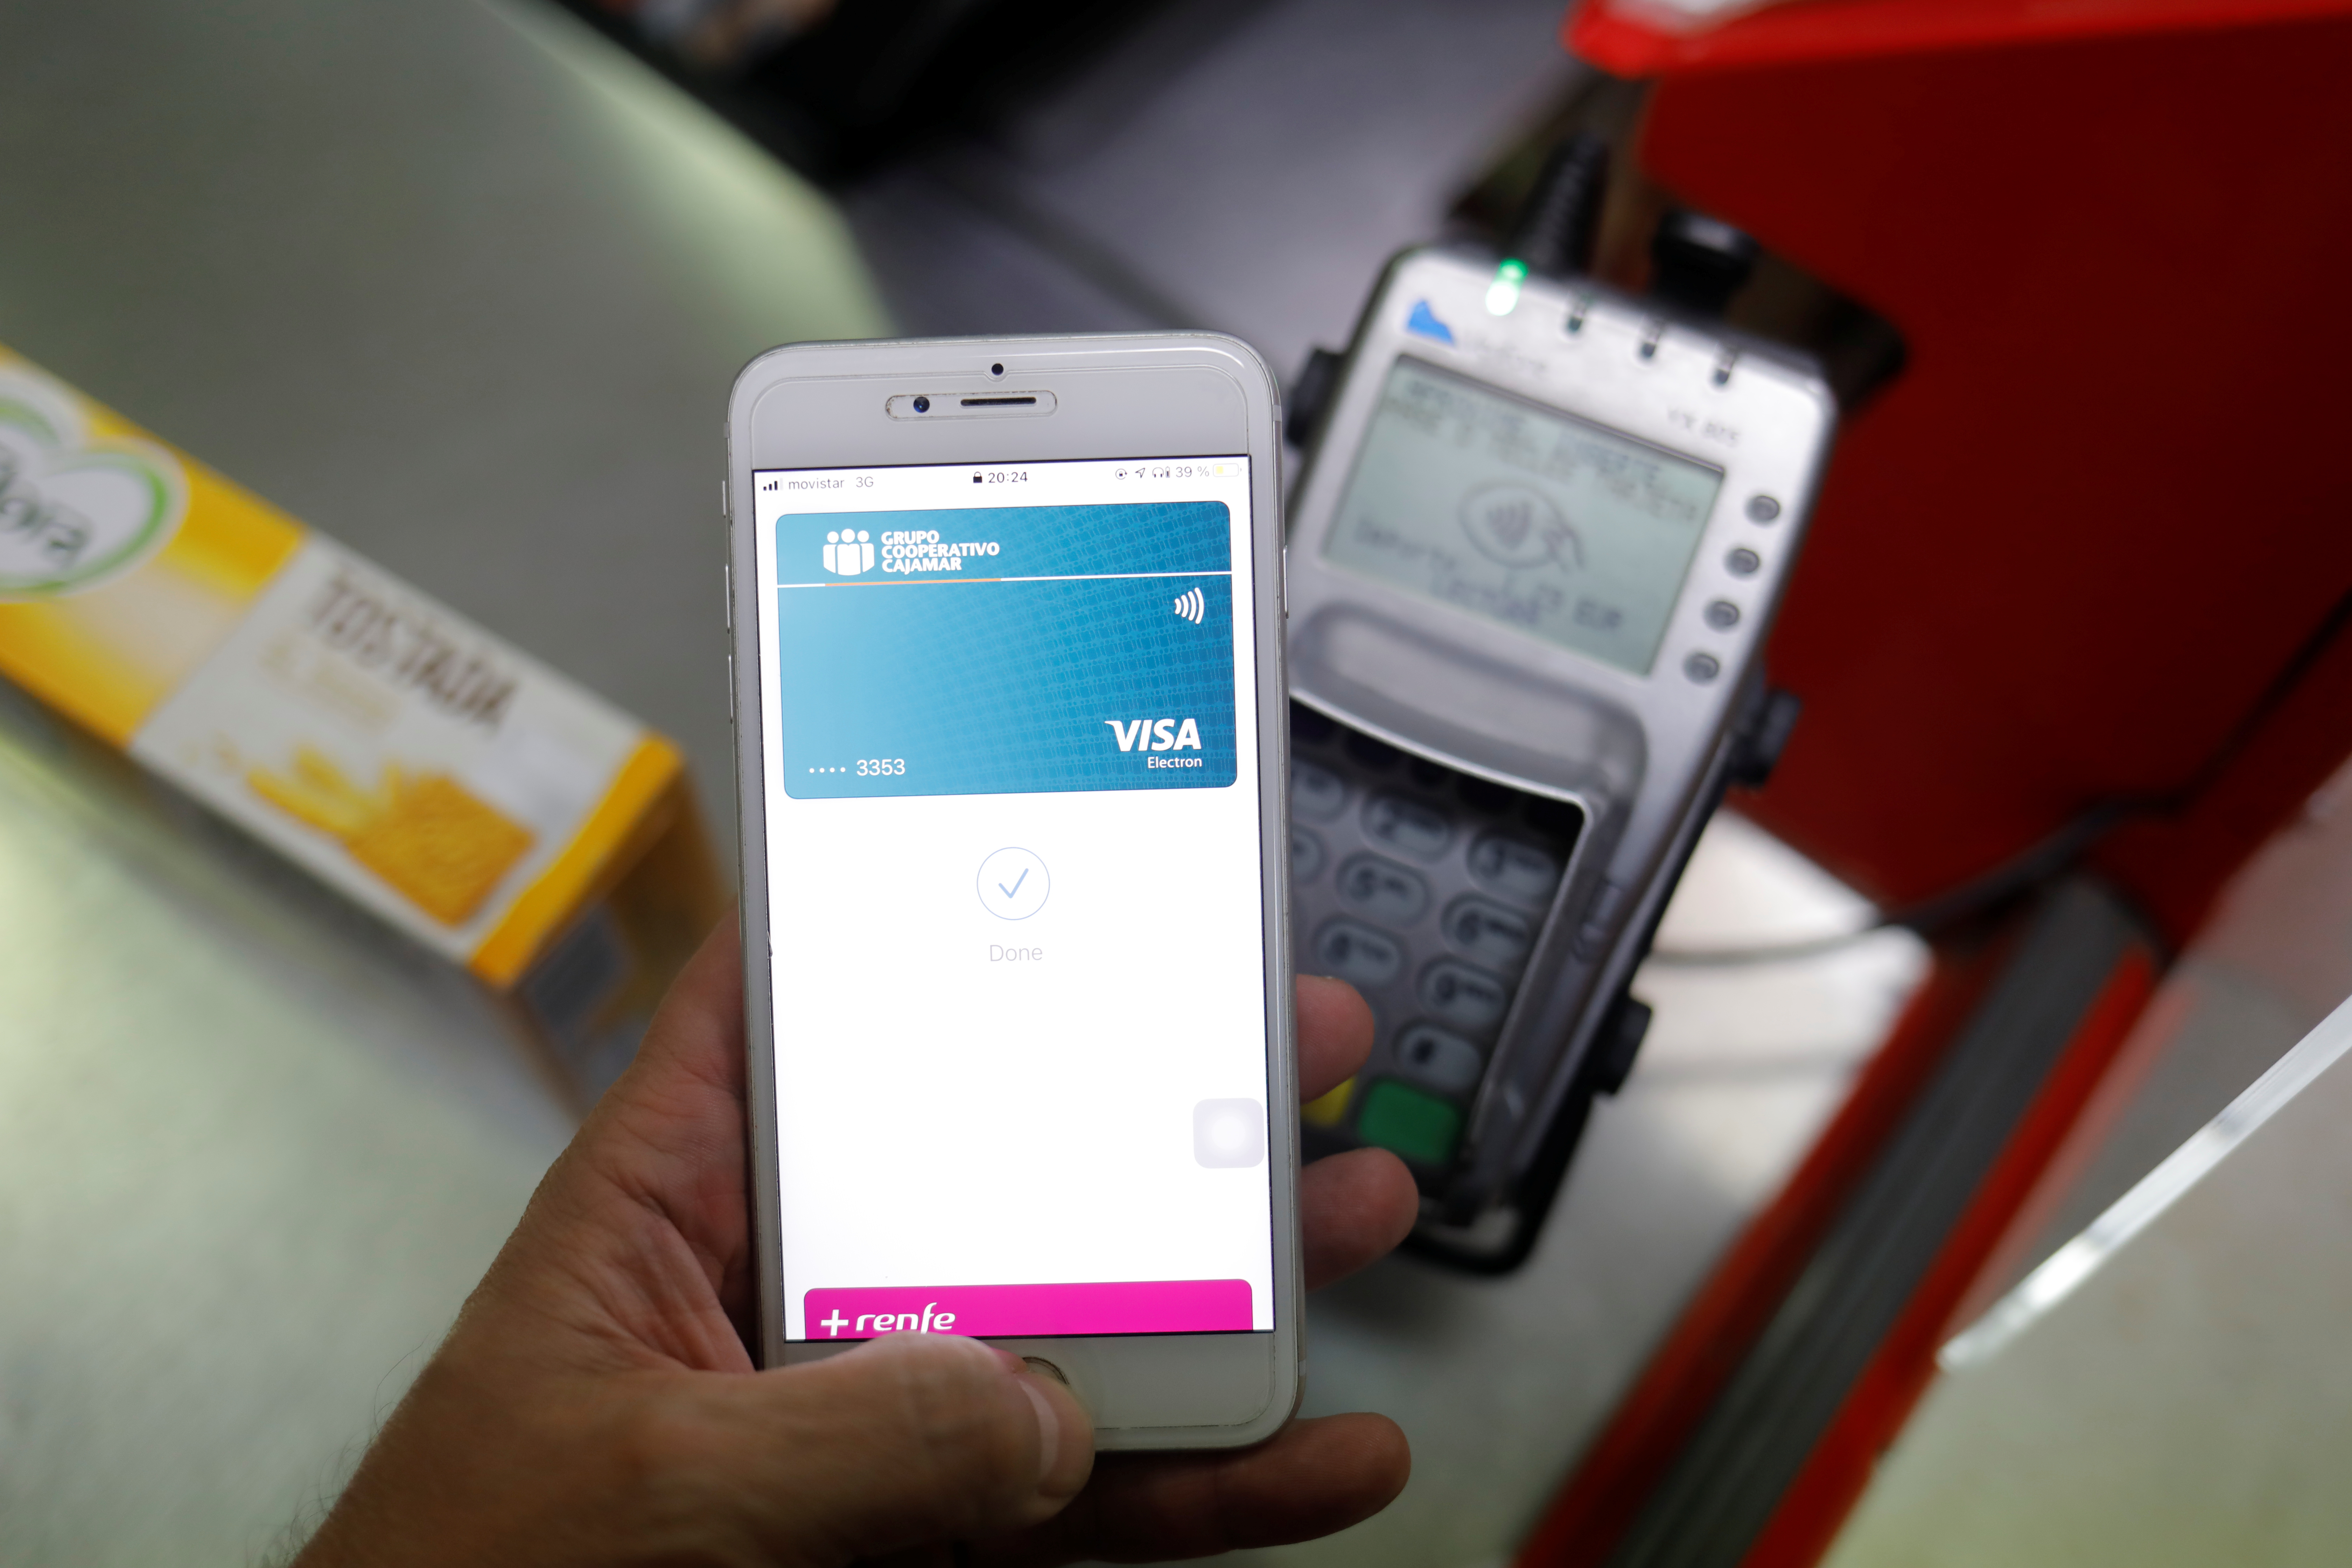 A shopper uses the mobile payment service Apple Pay at a supermarket, amid the coronavirus disease (COVID-19) outbreak, in Ronda, southern Spain October 9, 2020. REUTERS/Jon Nazca